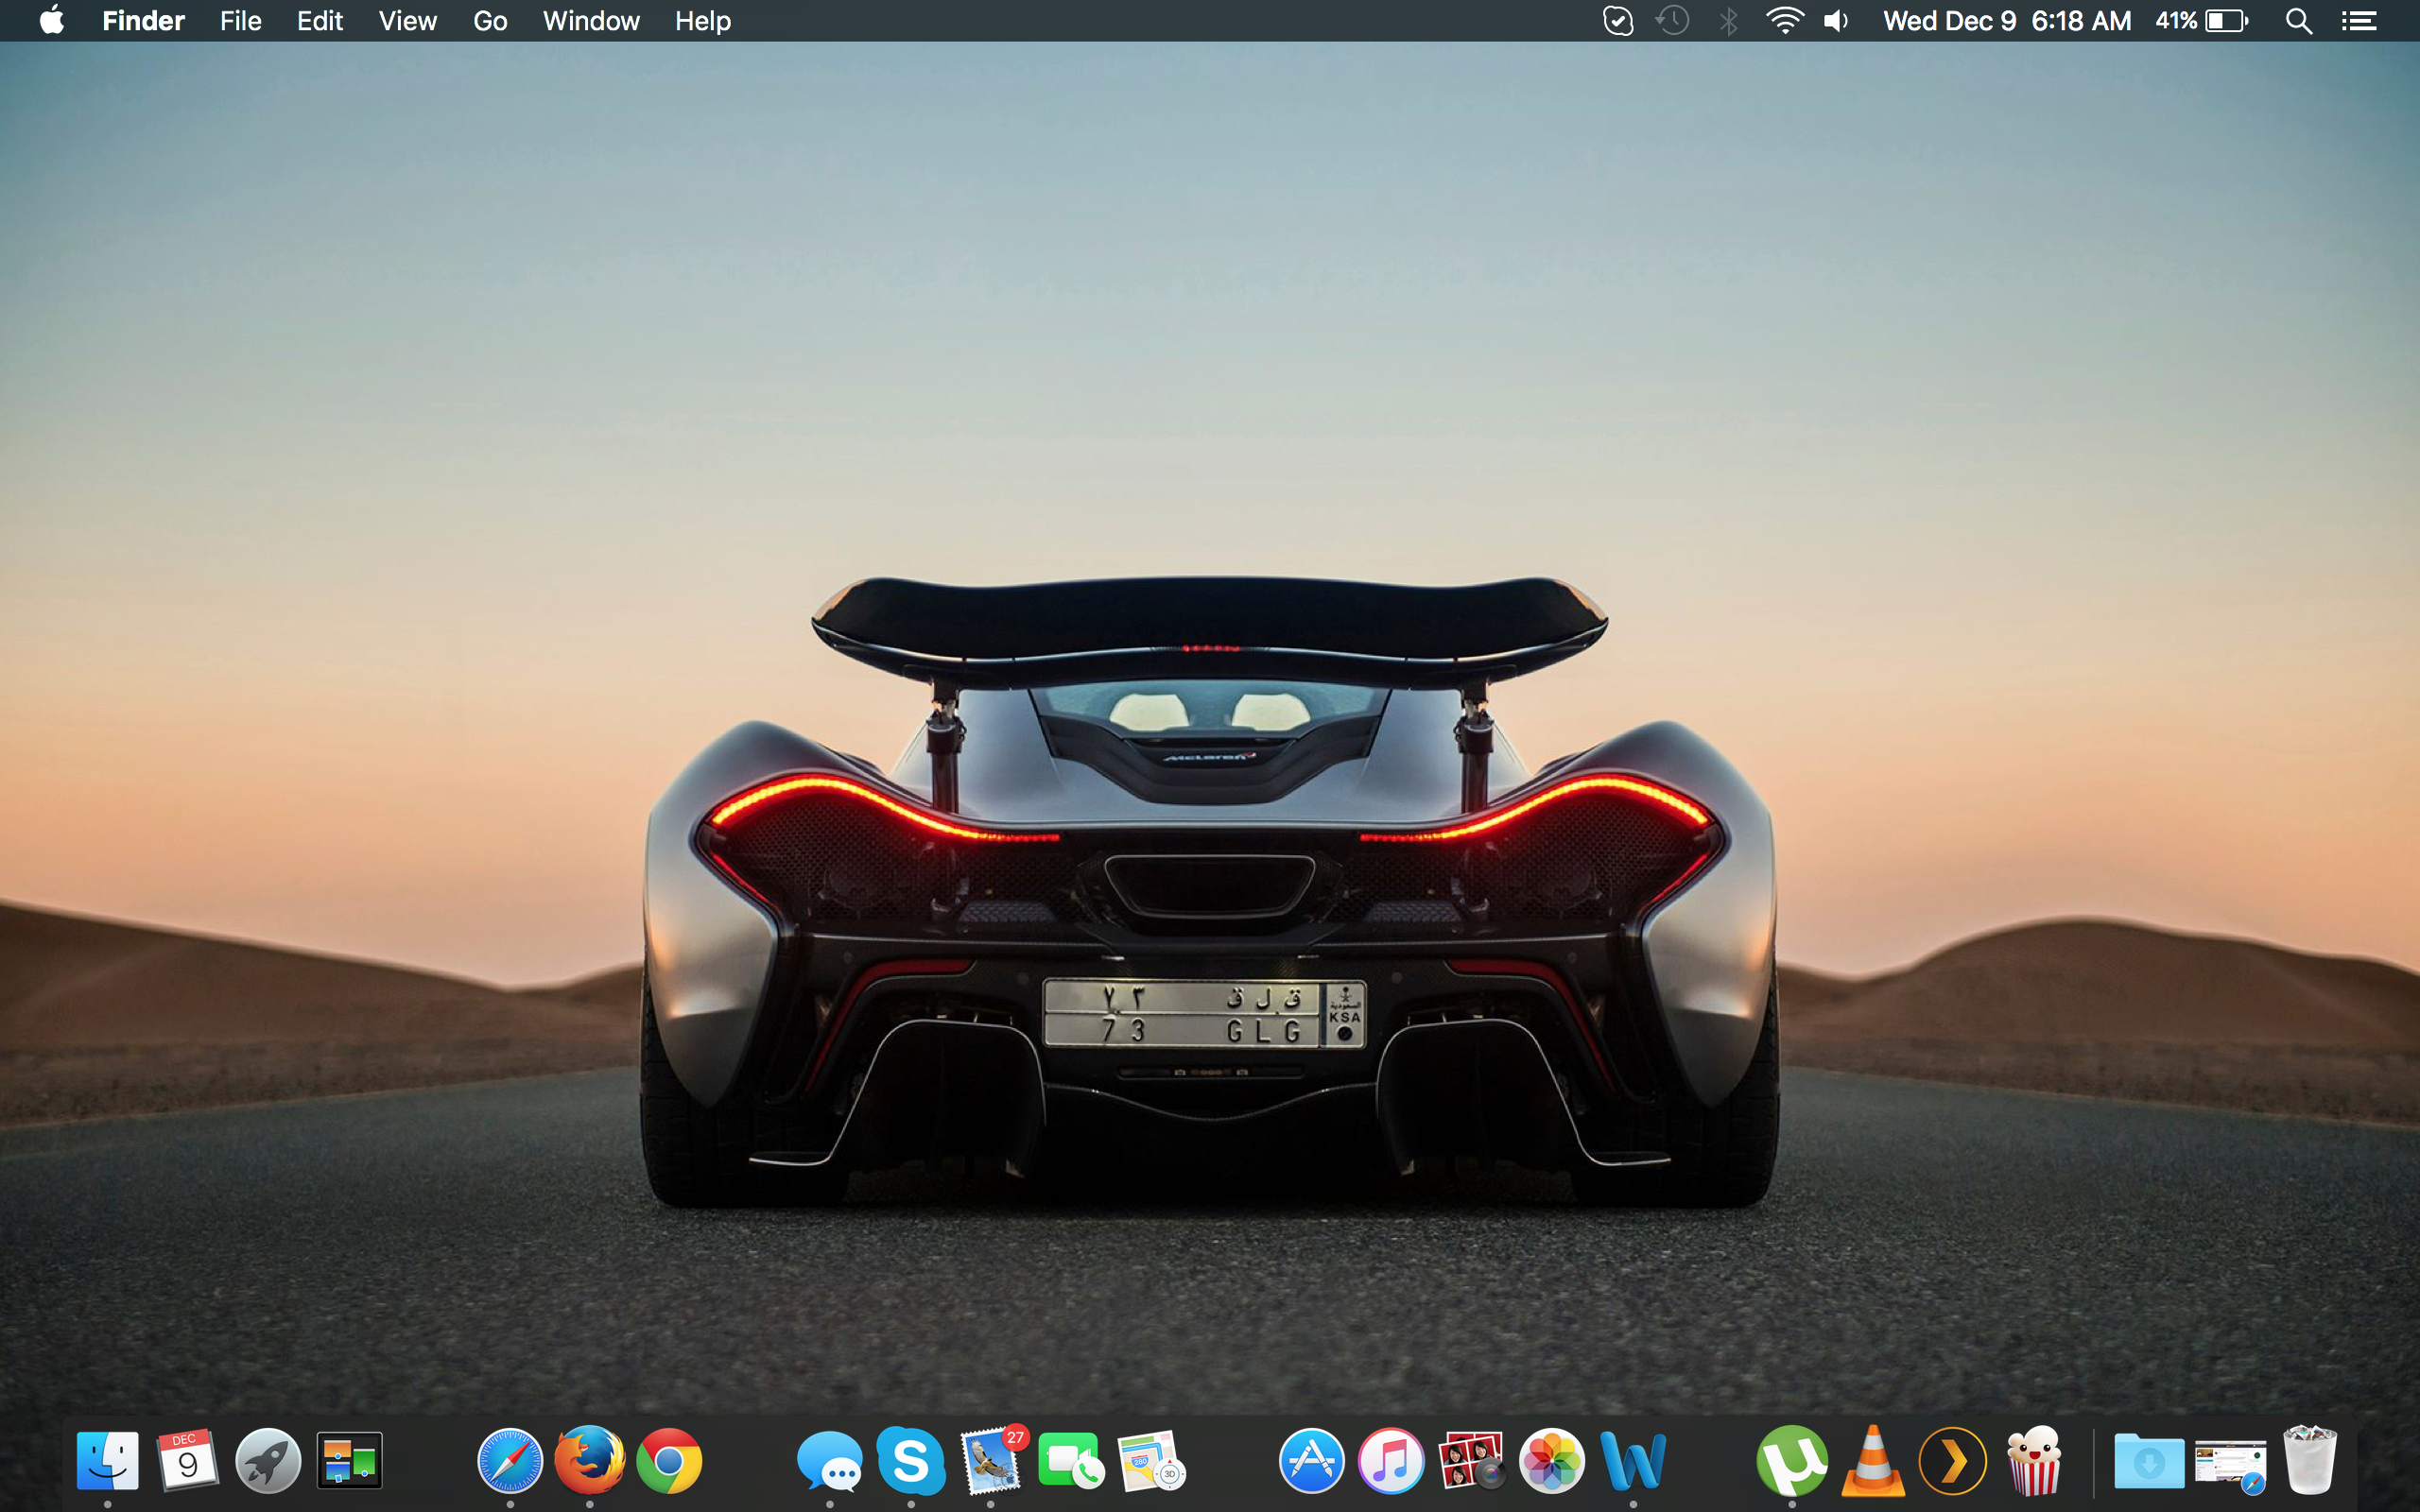 Continuing with Wallpaper Wednesday heres a look at my current 2560x1600